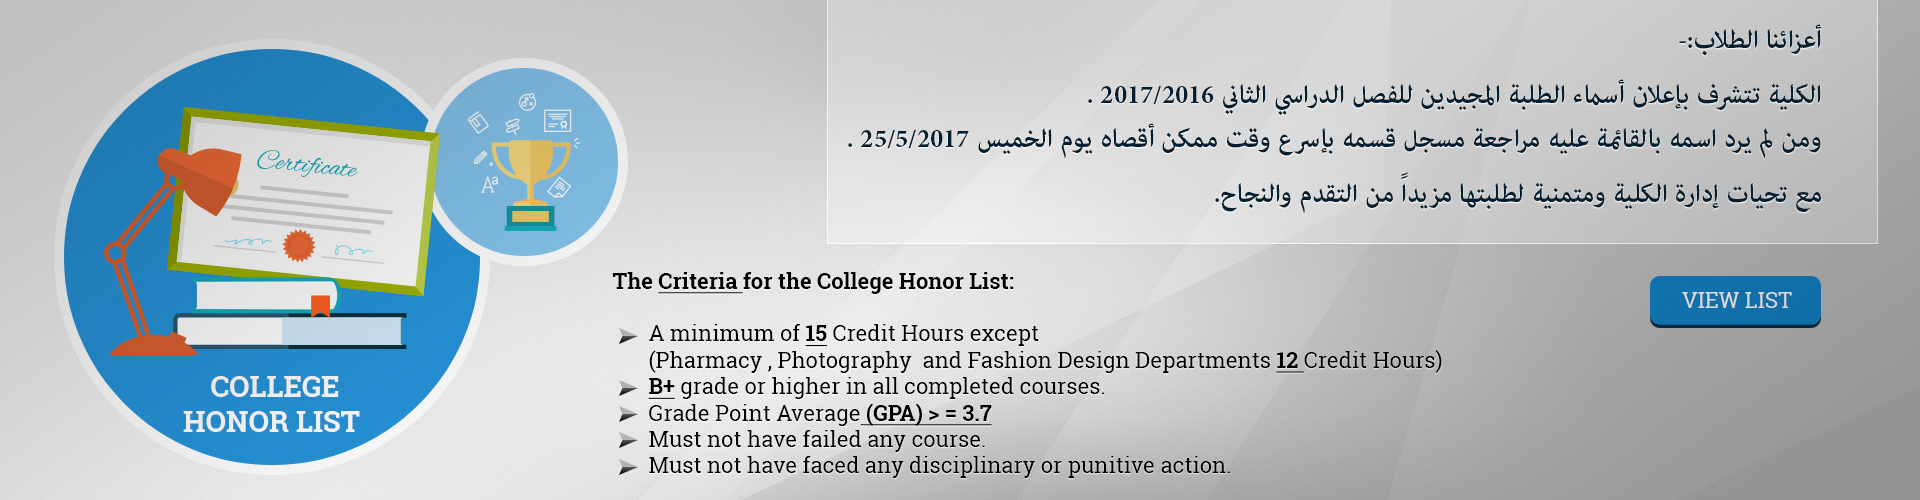 College Honor List Semester 2 AY 2016 - 2017